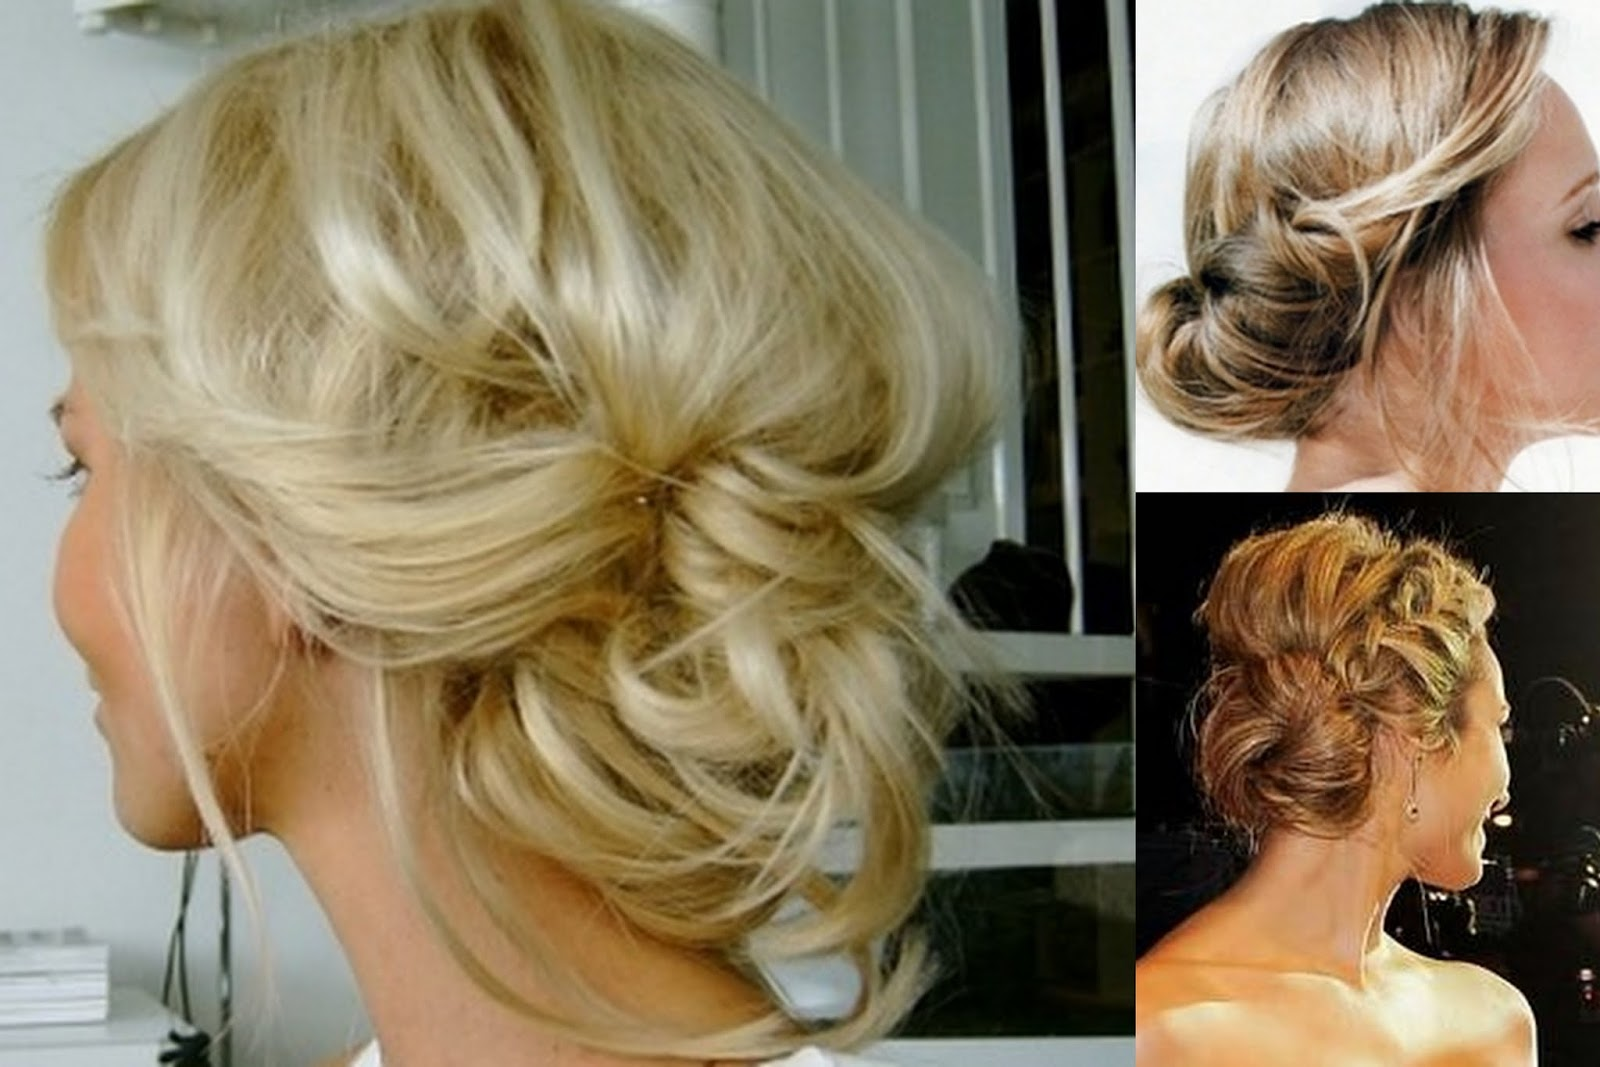 Wedding hair updo wedding preparations coffee beans and bobby pins the perfect wedding hair updo by nc lifestyle blogger amy of coffee beans and bobby pins junglespirit Gallery